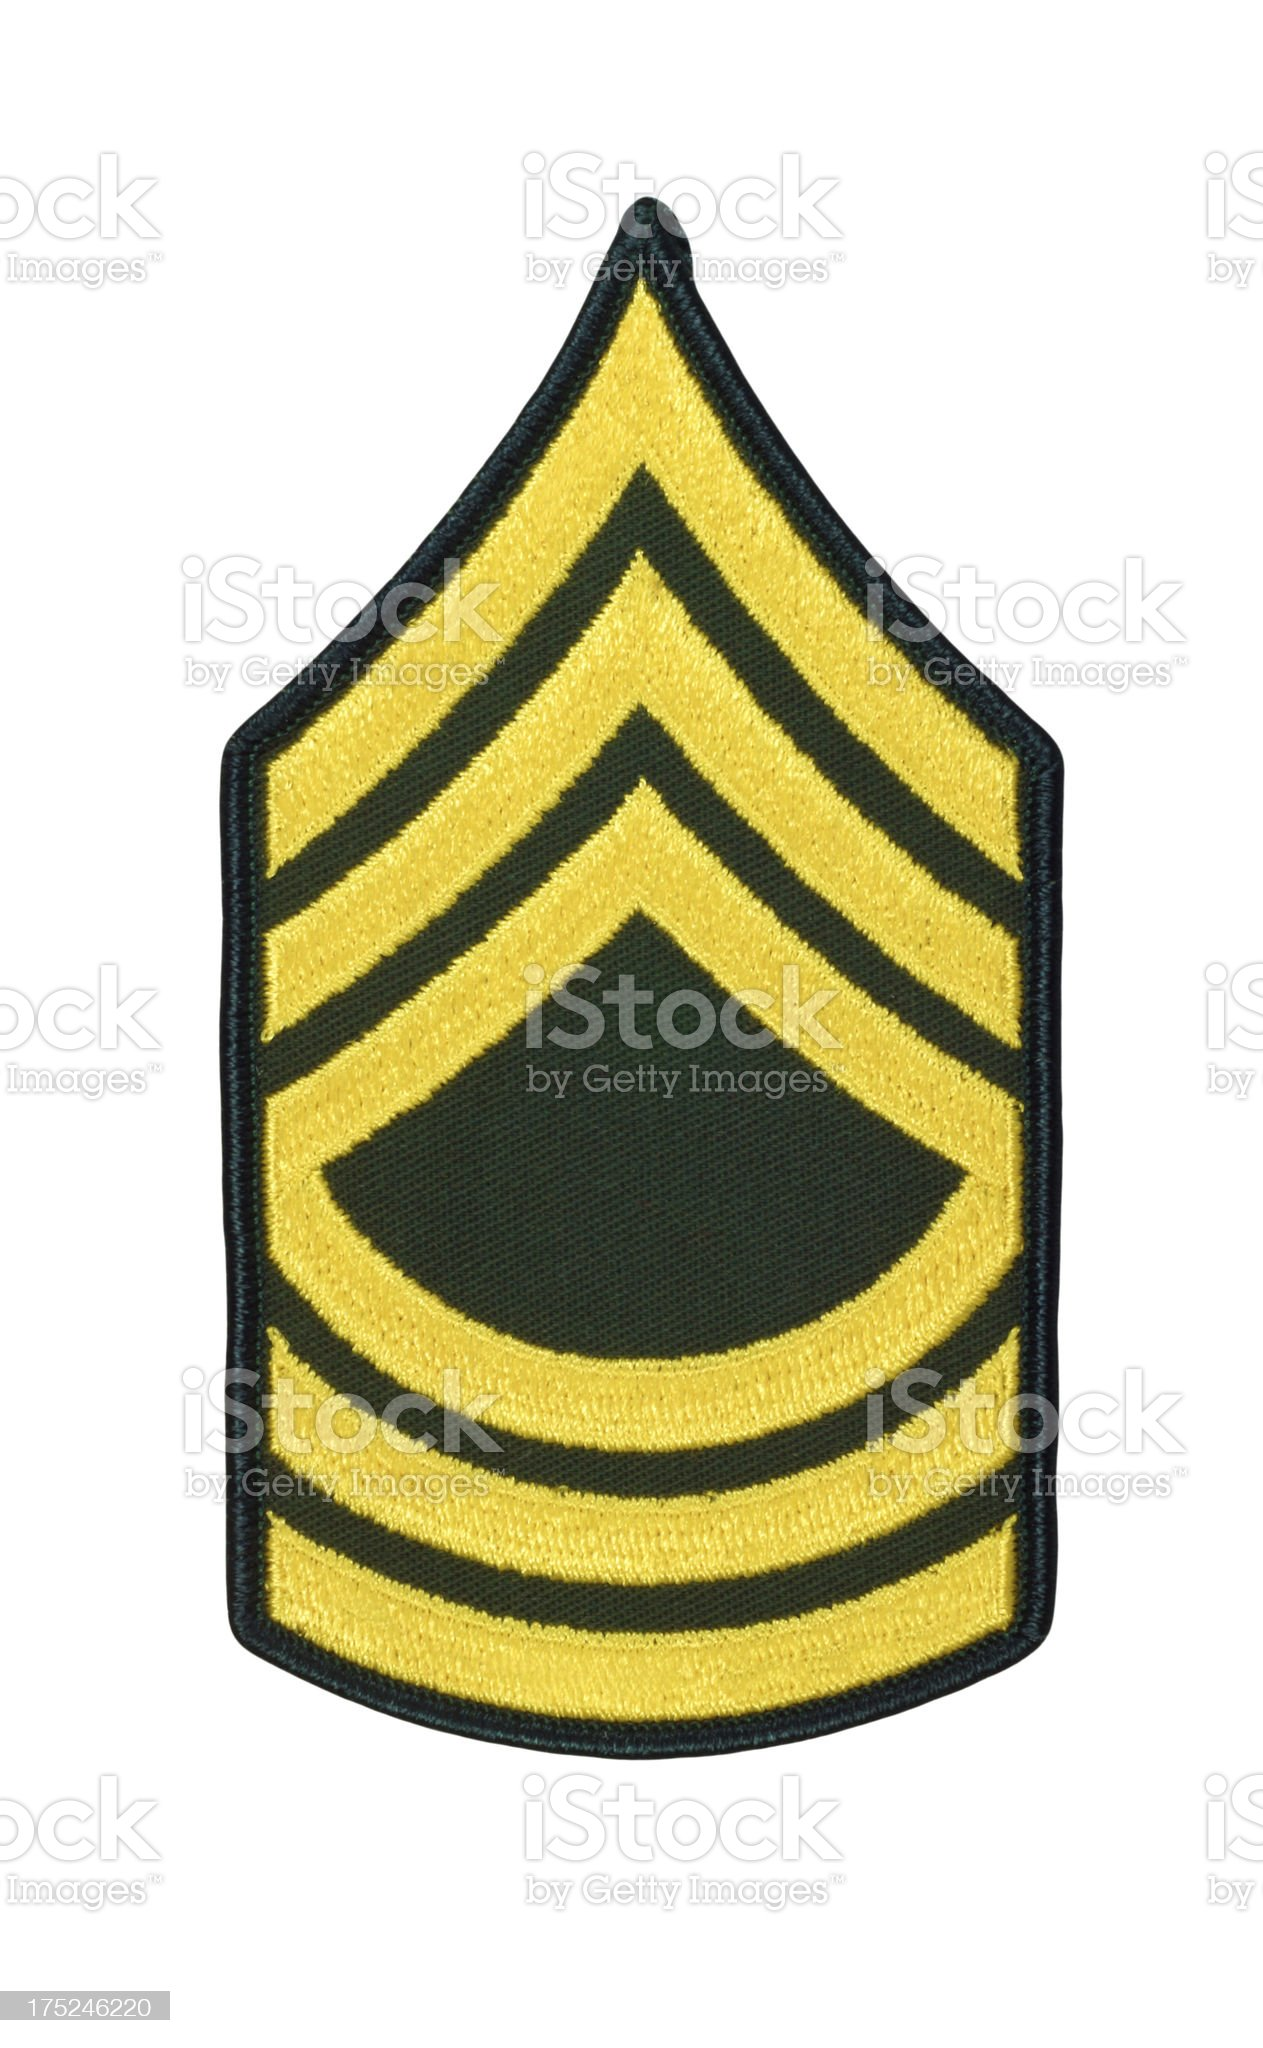 US Army Master Sergeant Rank Patch royalty-free stock photo